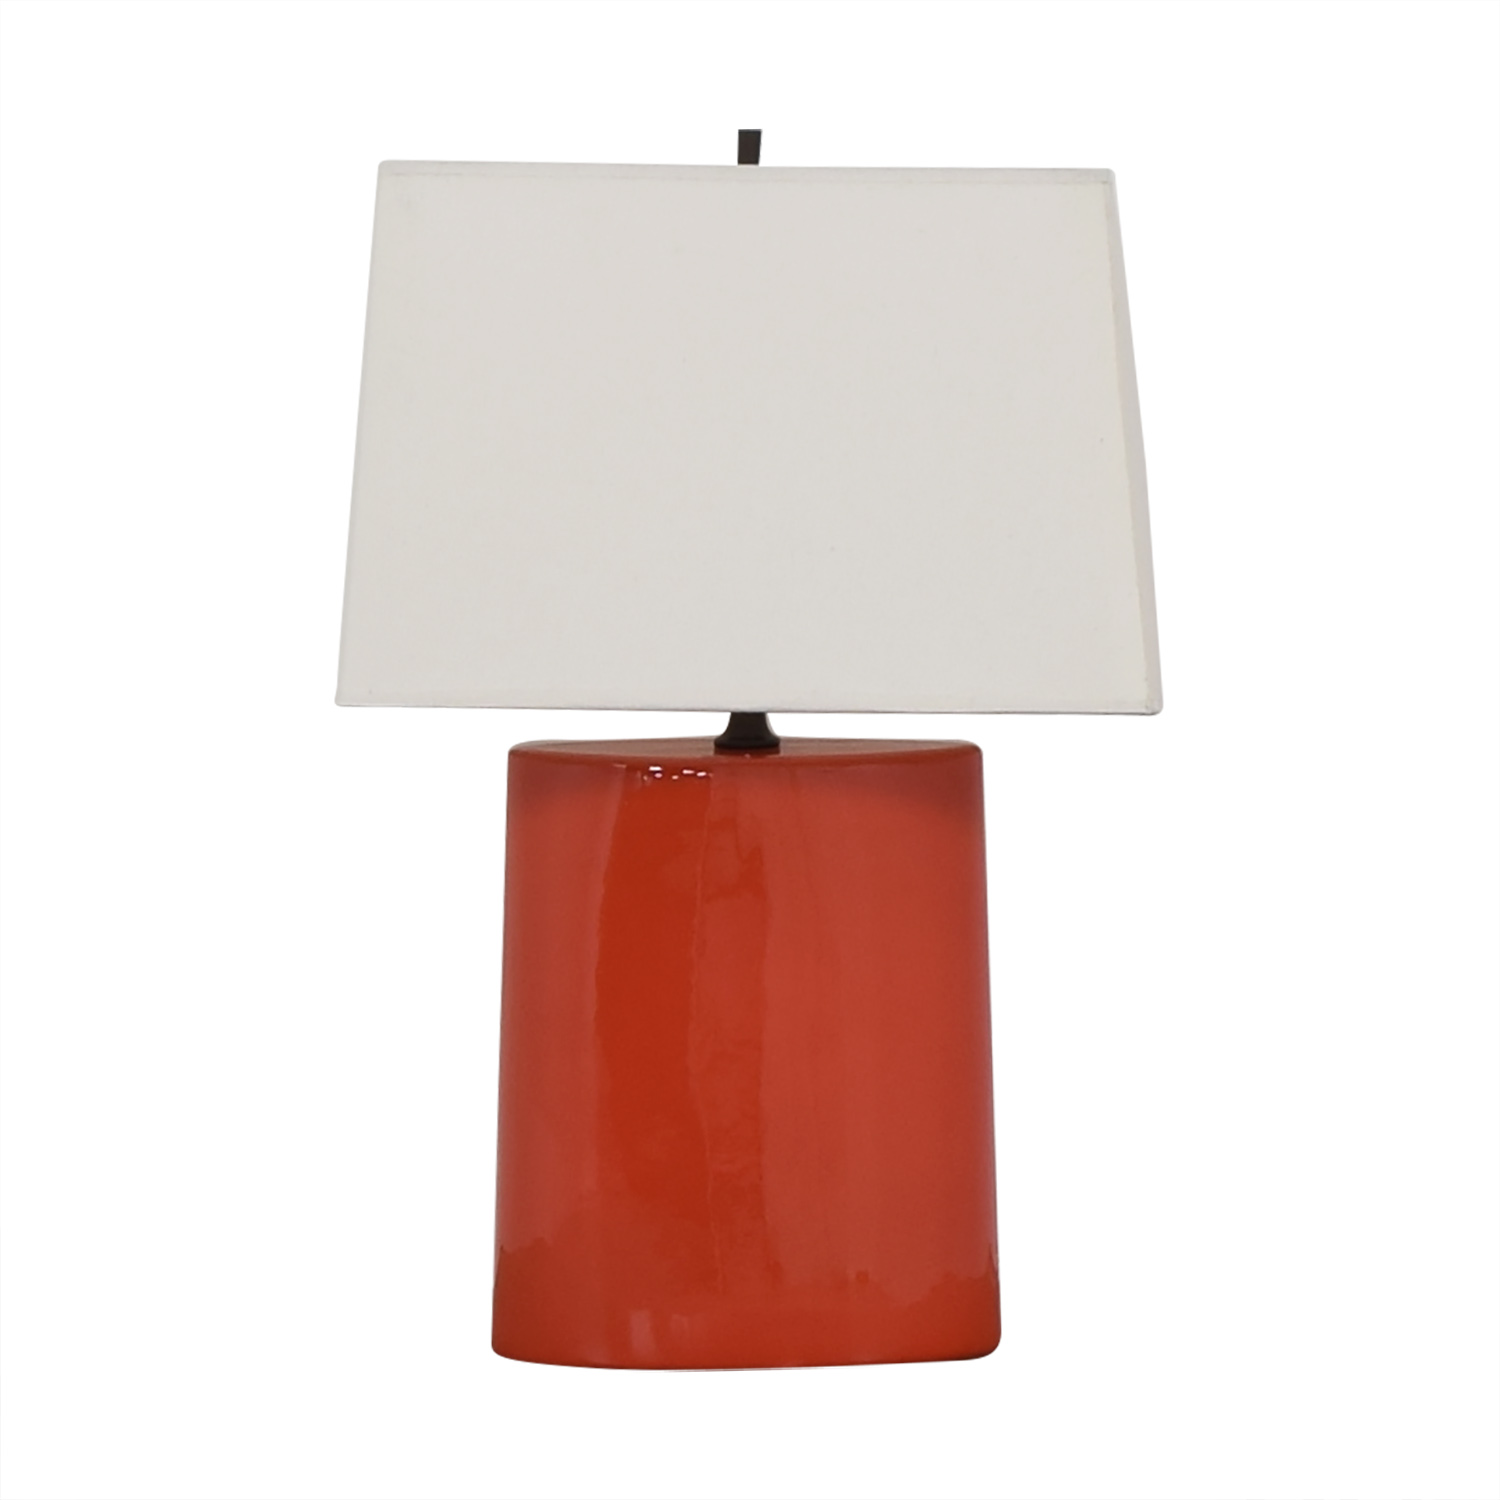 Crate & Barrel  Modern Lamp sale